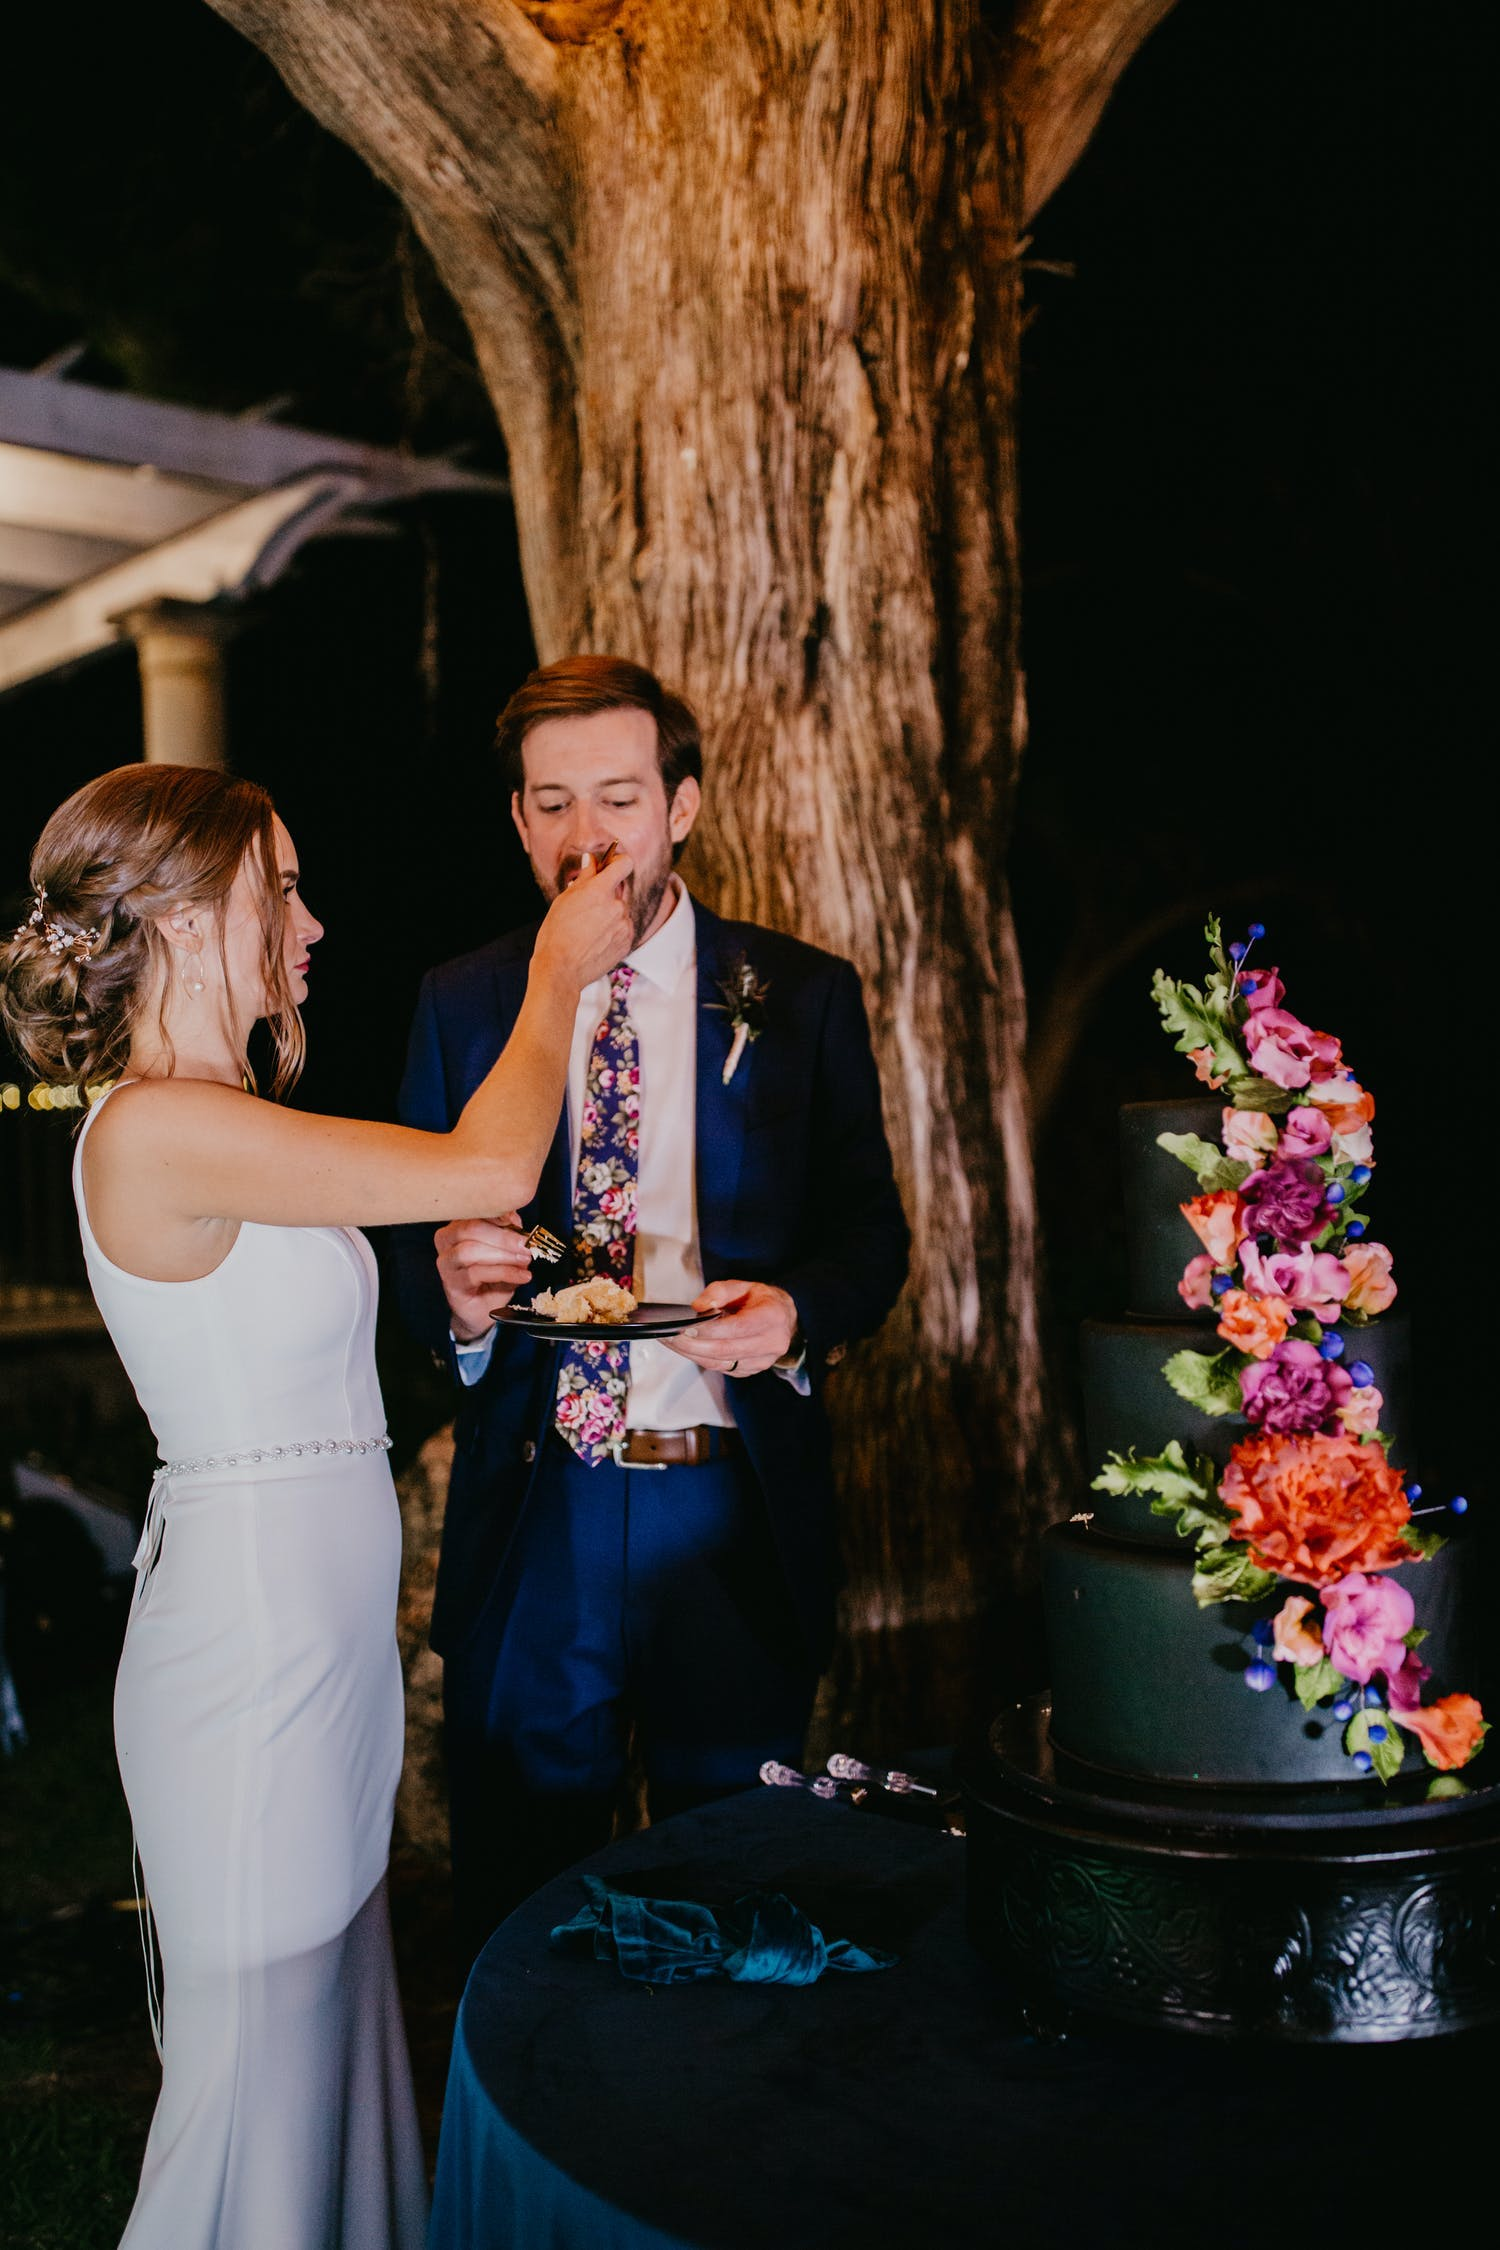 Bride and groom cut black wedding cake with colorful flowers at evening outdoor small wedding   PartySlate